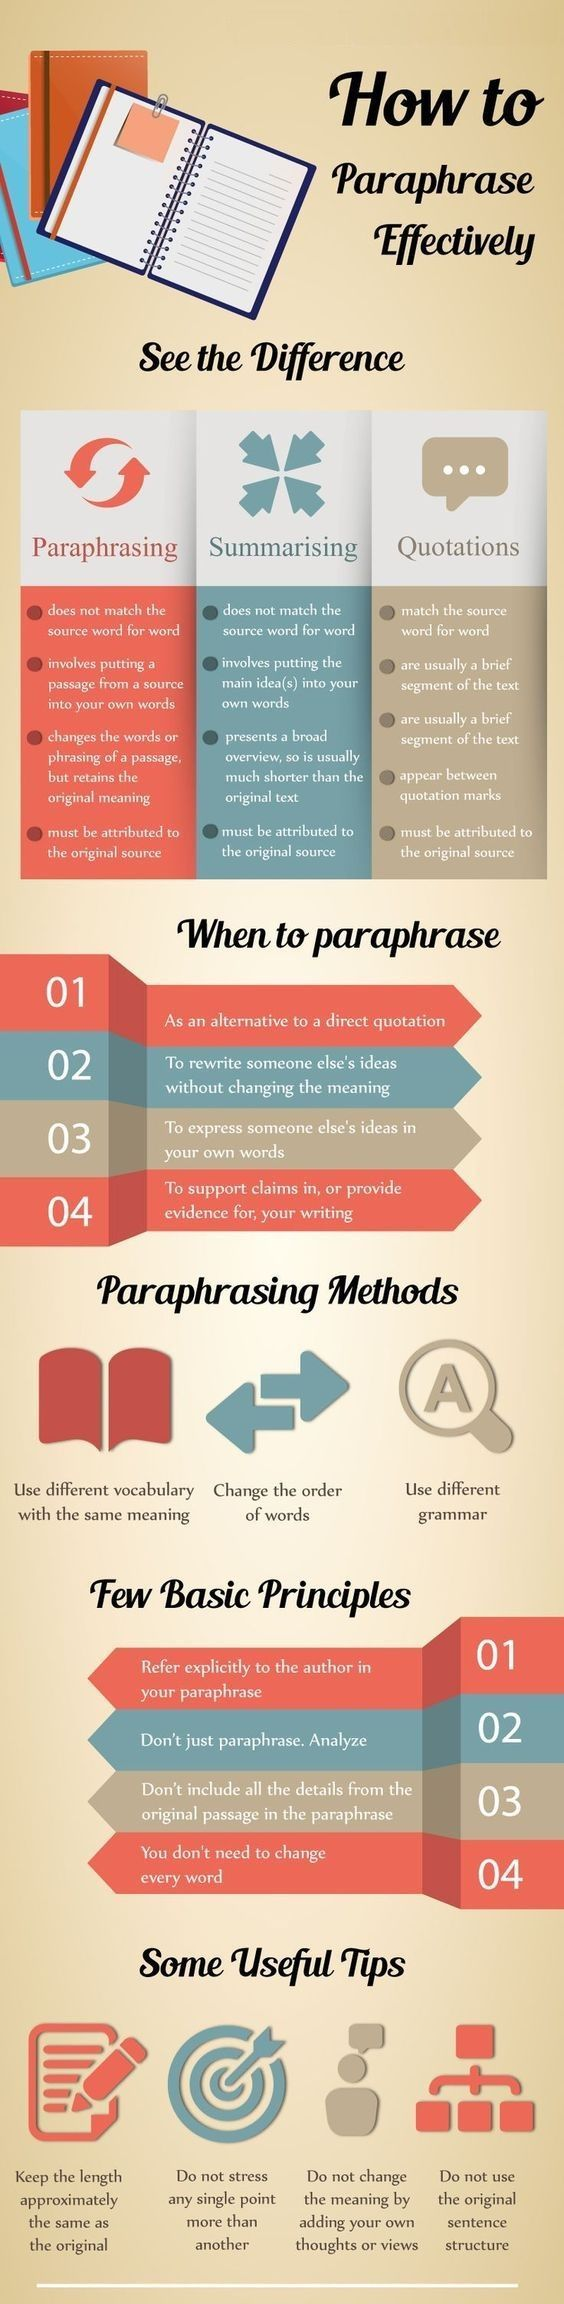 How To Paraphrase Effectively Essay Narrative Best Writing Service Quotation Paraphrasing And Summarizing